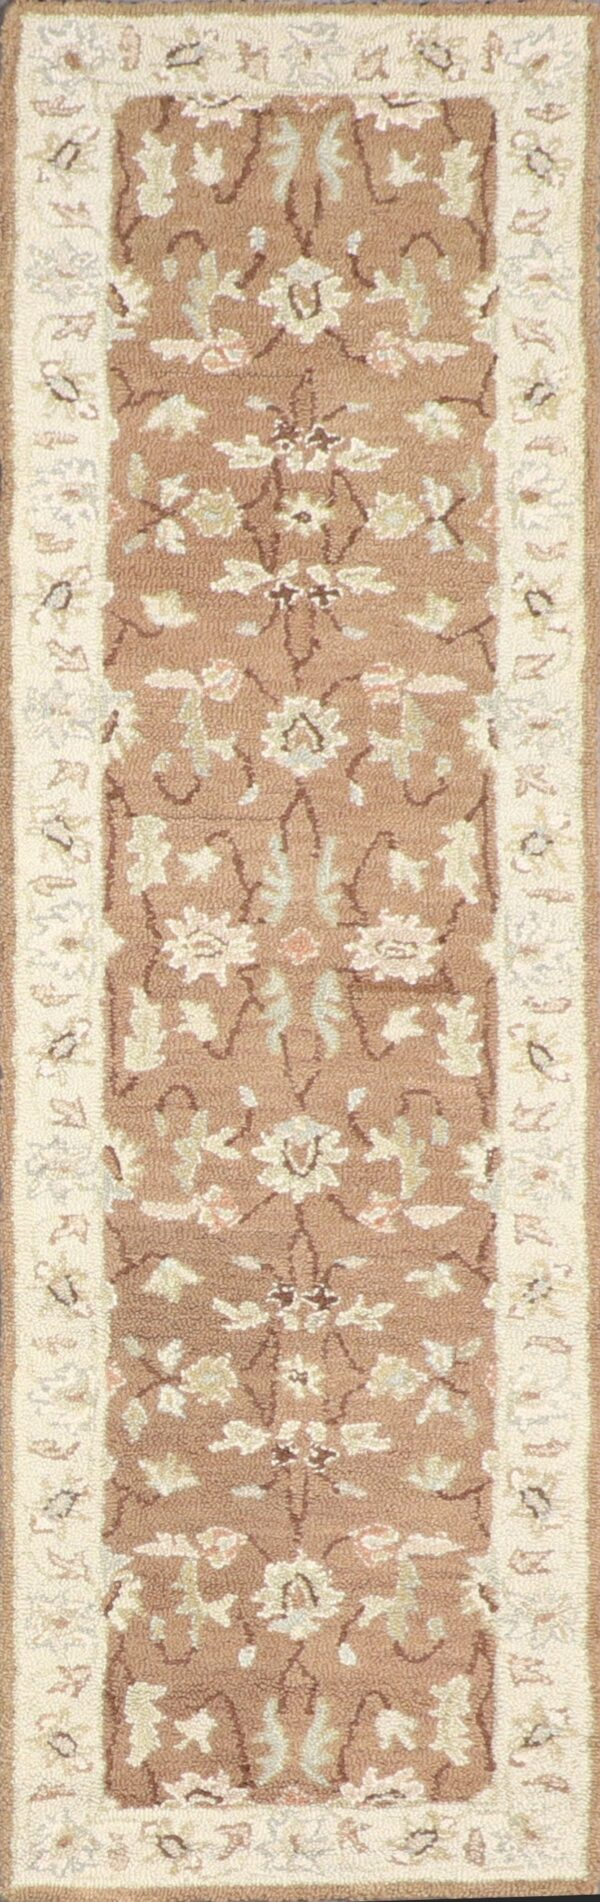 """2'3""""x7'4"""" Decorative Brown Hook Wool Hand-Tufted Rug - Direct Rug Import 